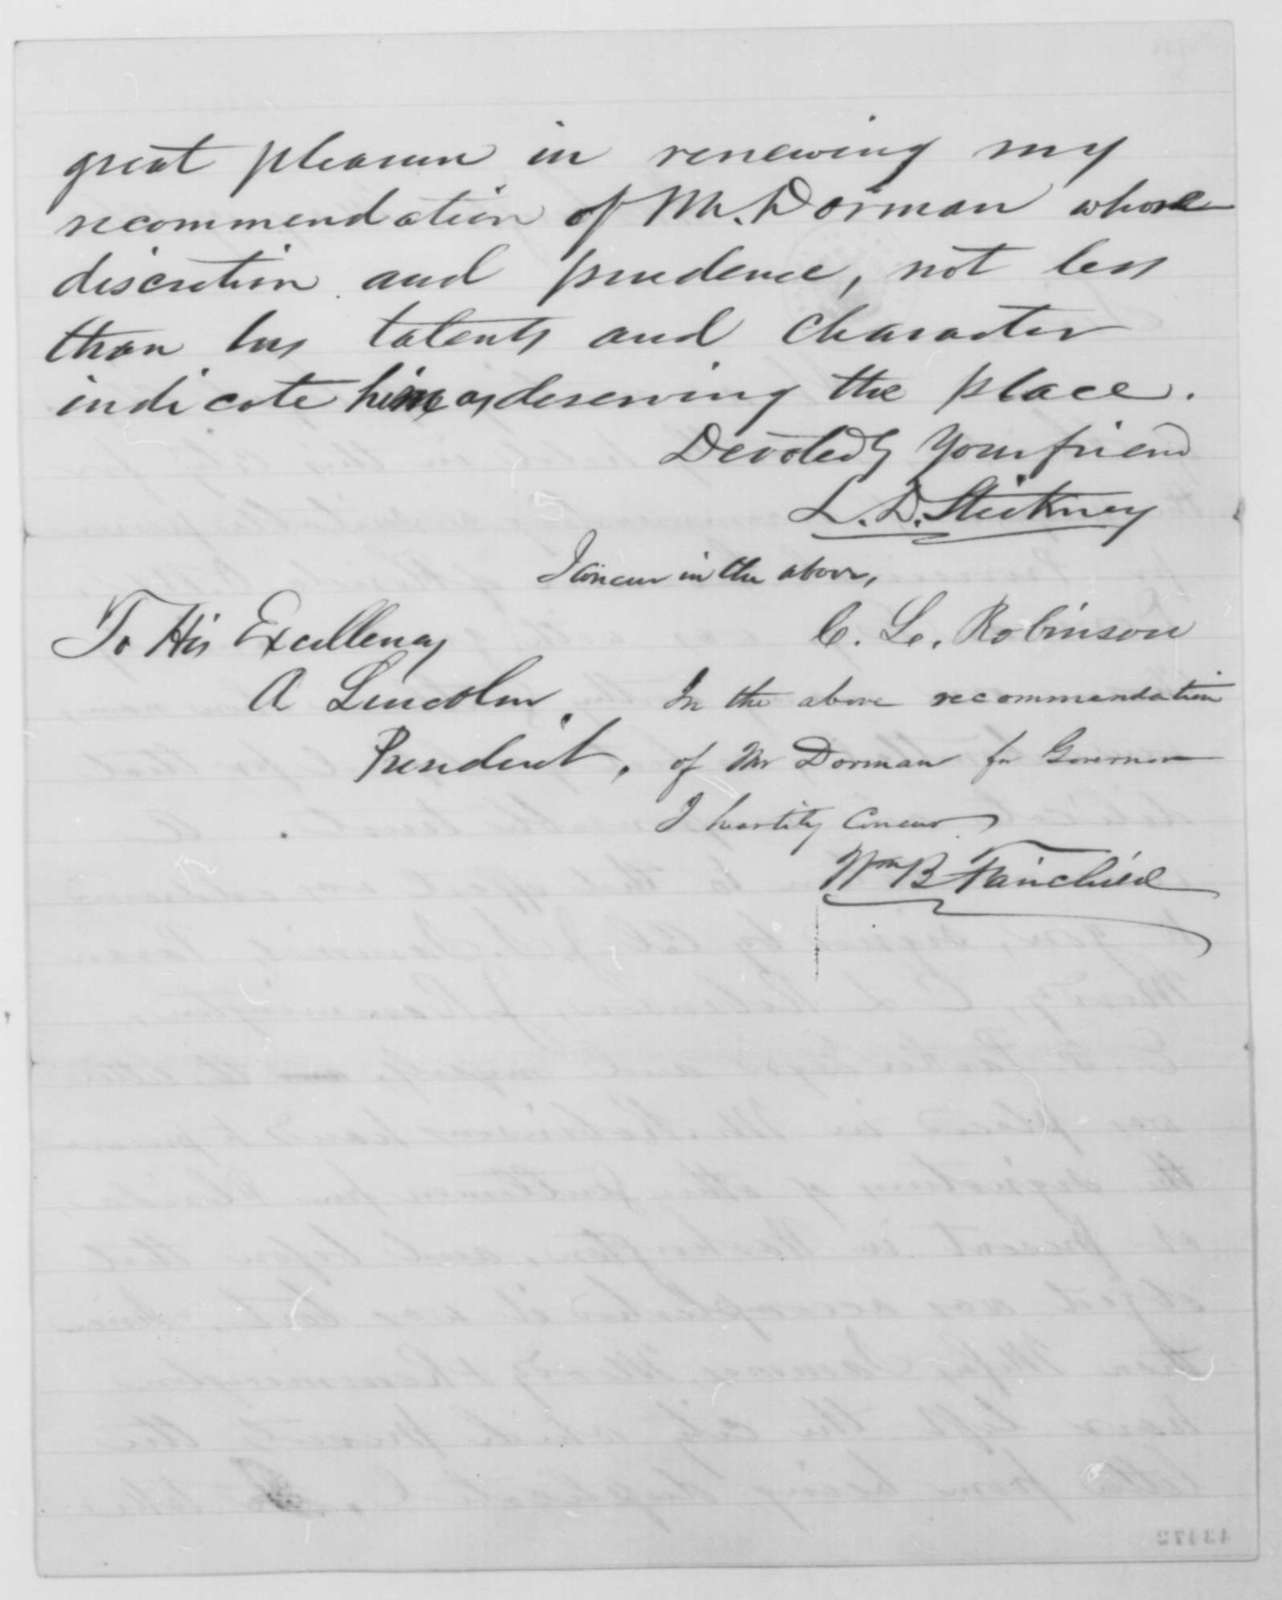 Lyman D. Stickney, et al. to Abraham Lincoln, Saturday, May 17, 1862  (Recommendation)